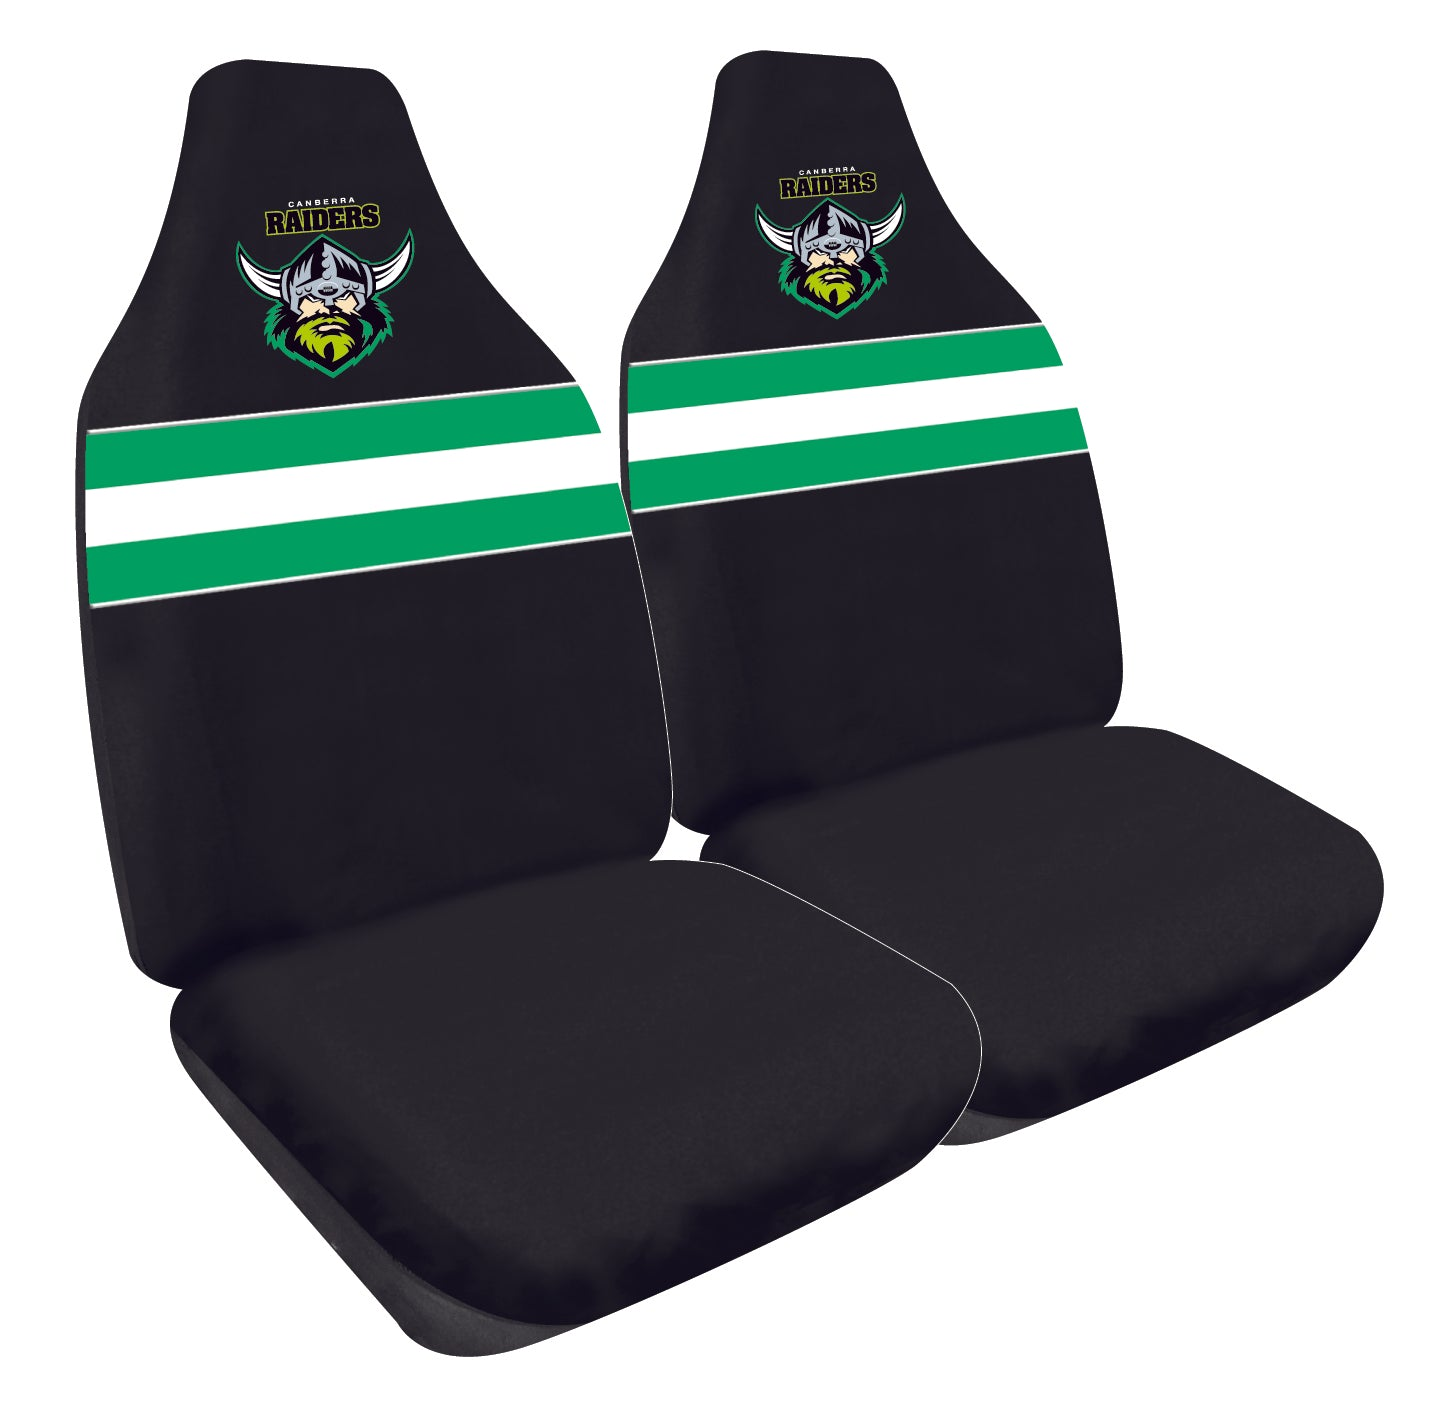 Canberra Raiders Car Seat Covers